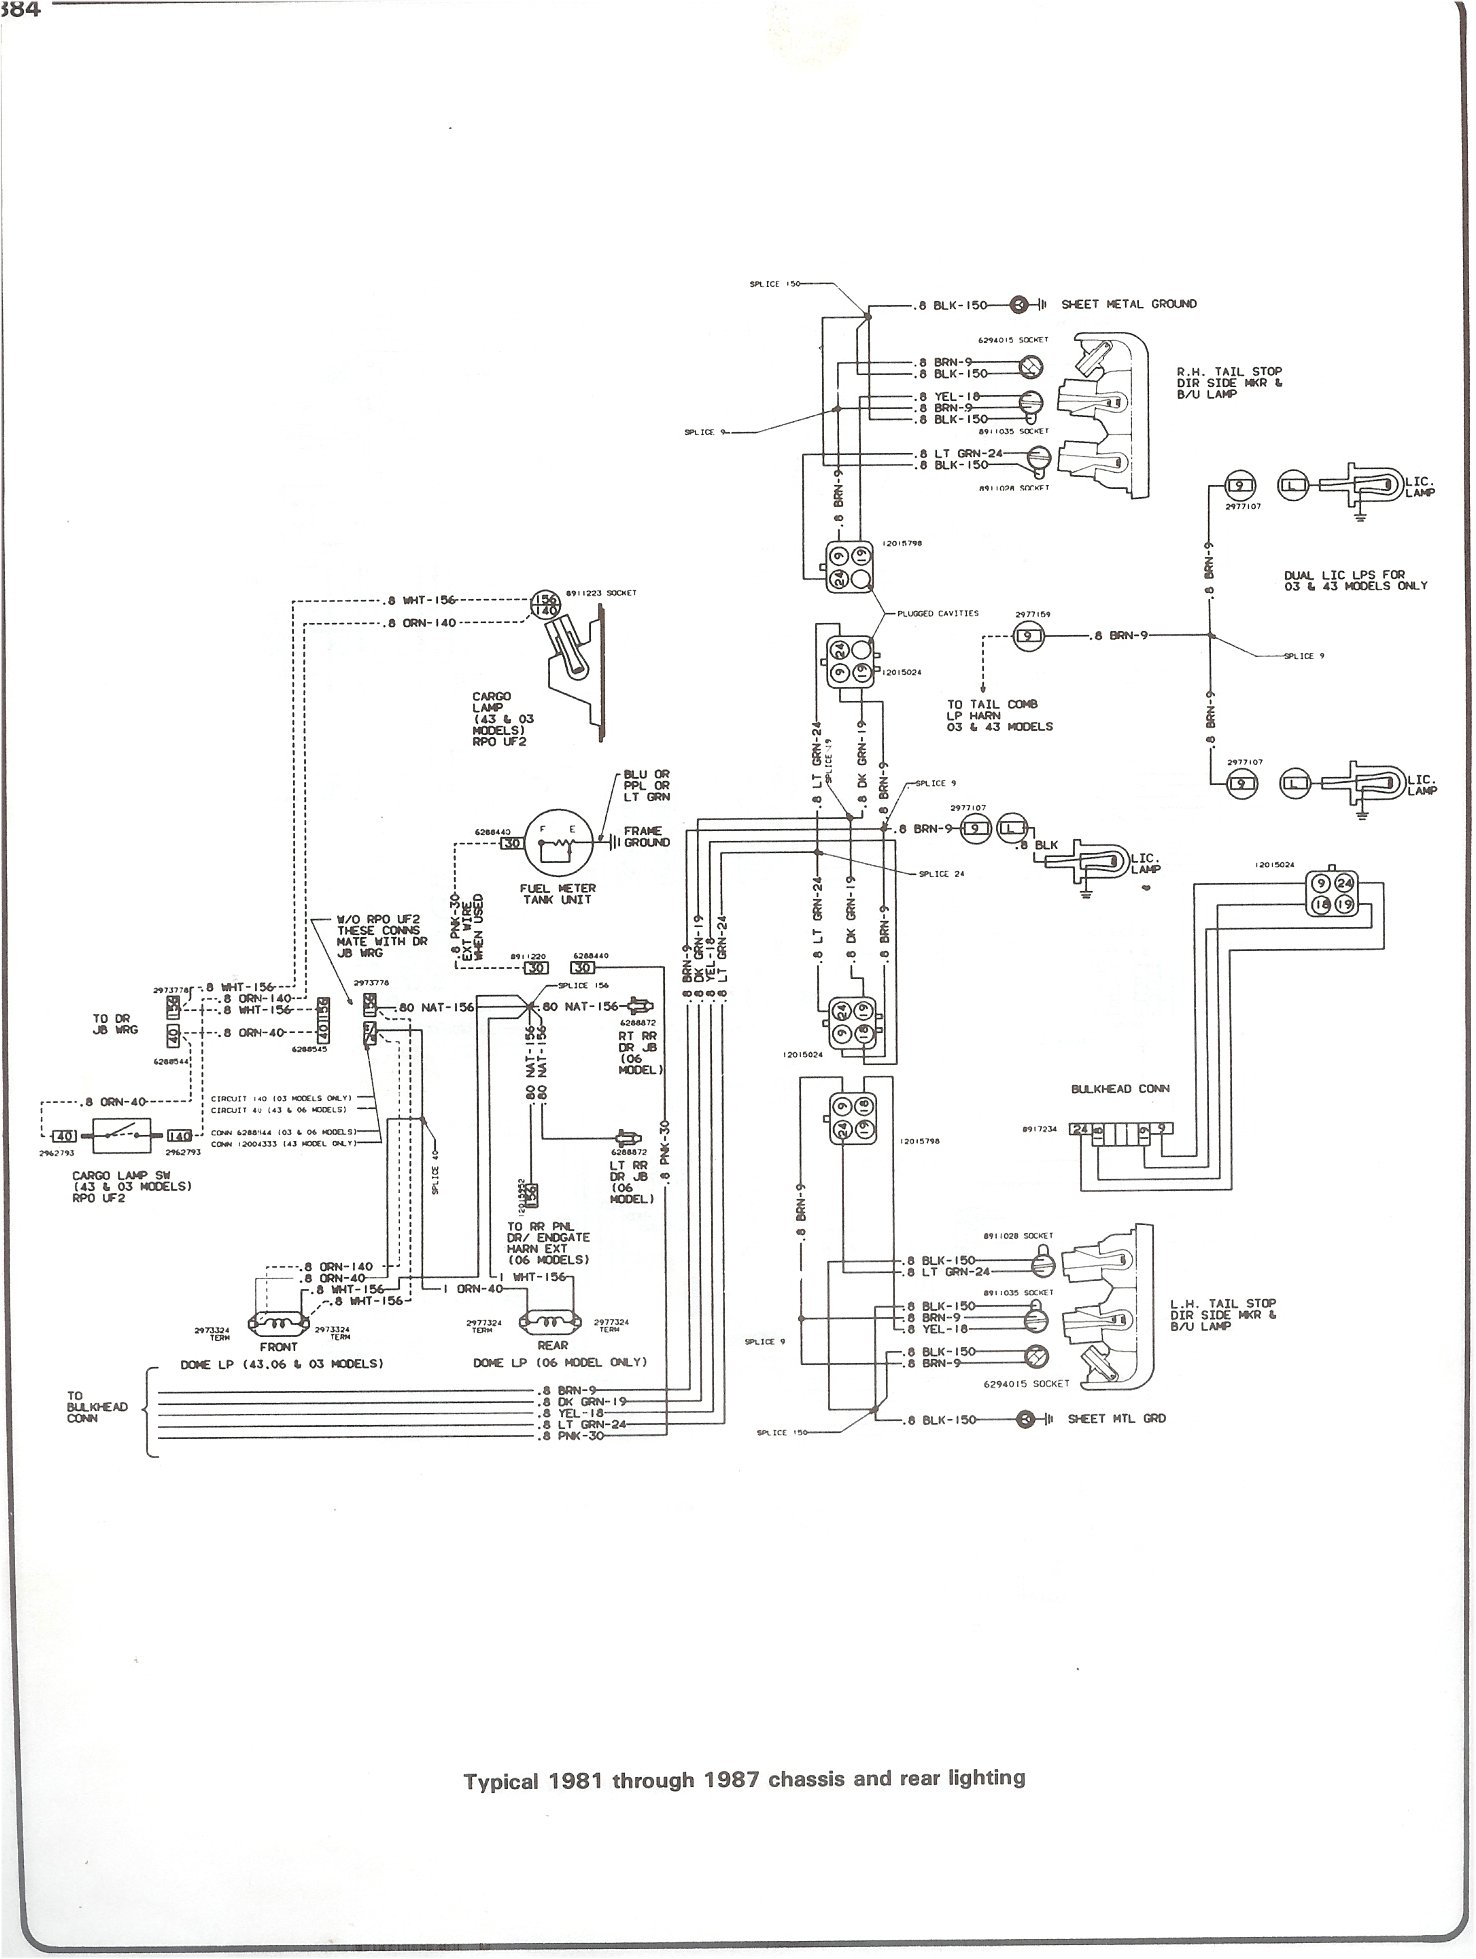 81 87_chass_rr_light complete 73 87 wiring diagrams wiring diagram for 1986 chevy p30 7.4l at bayanpartner.co